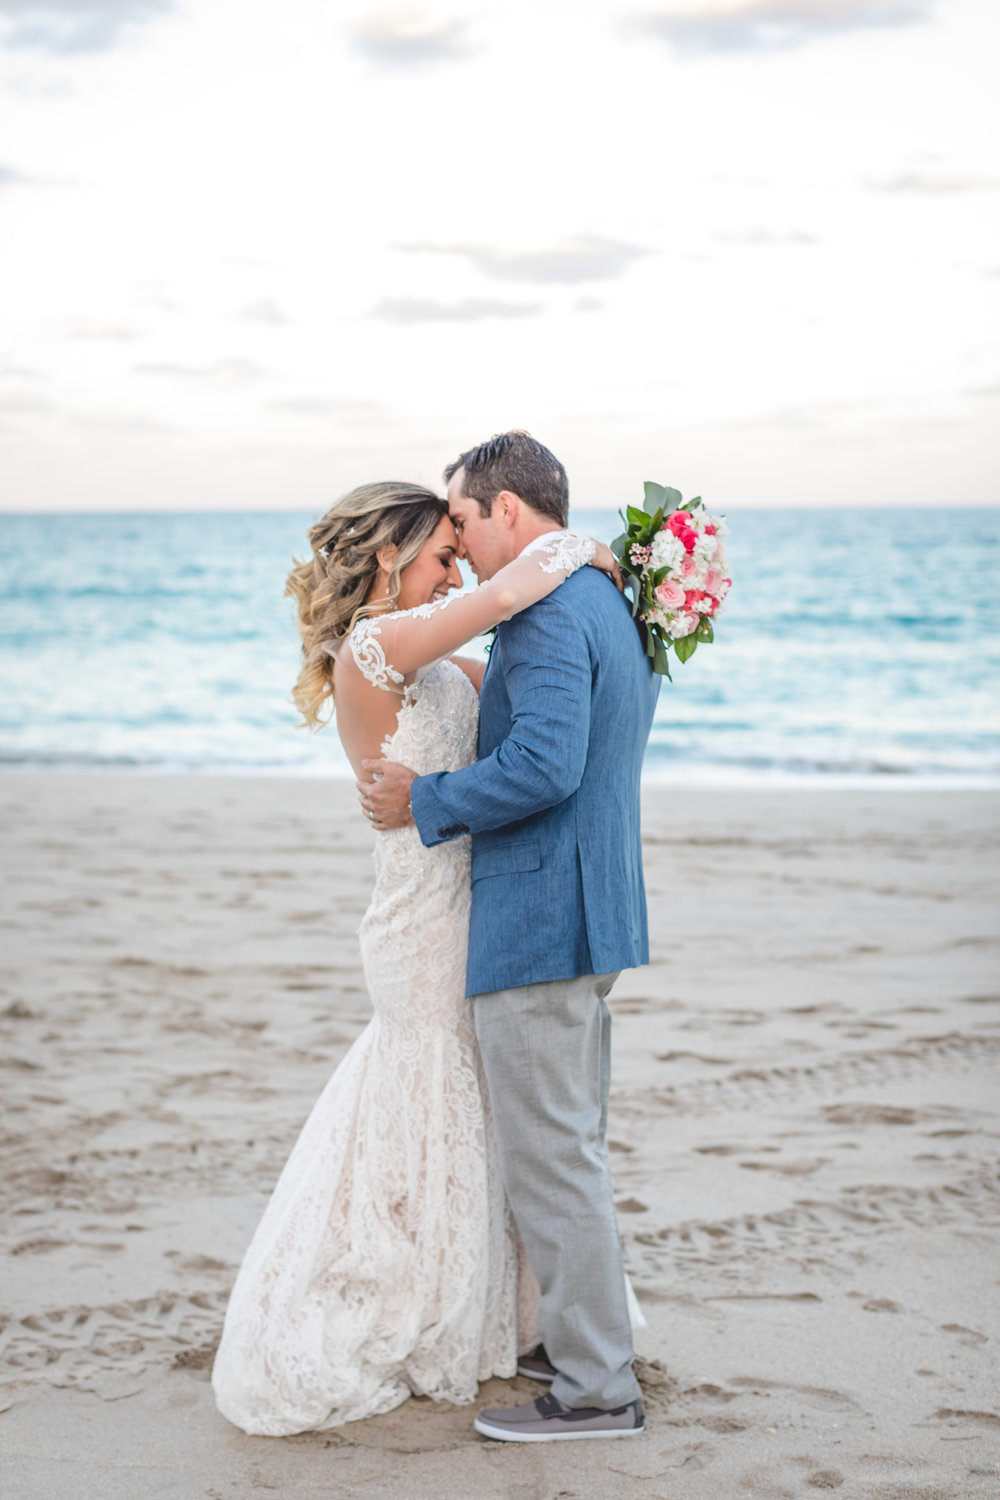 Catherine & Austin - This romantic beach wedding was nothing but stunning. Browse through the sandy ceremony and ballroom reception at the Pelican Grand Resort.